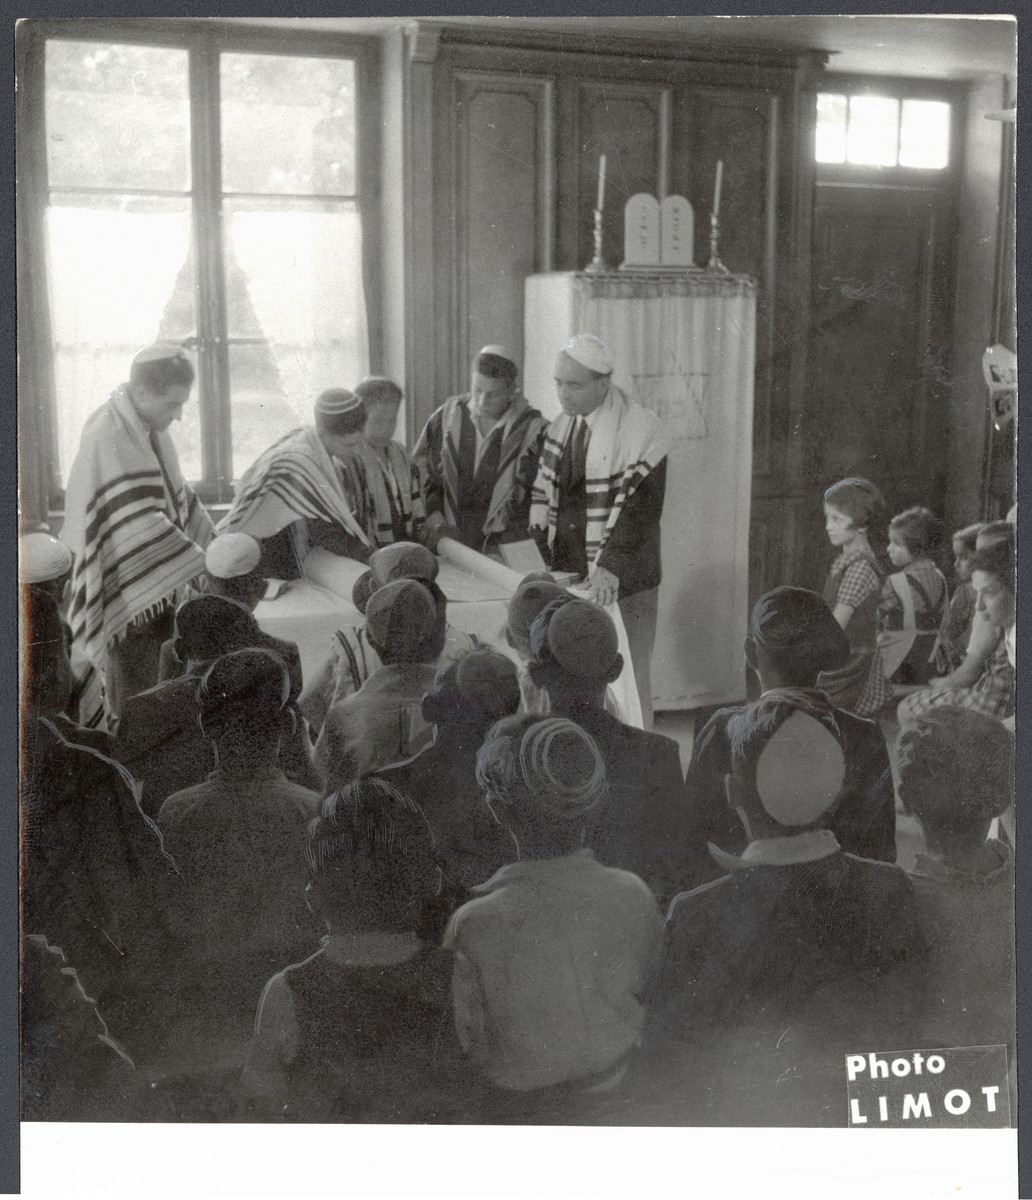 Young people read from the Torah in a religious service in a postwar OSE children's home.